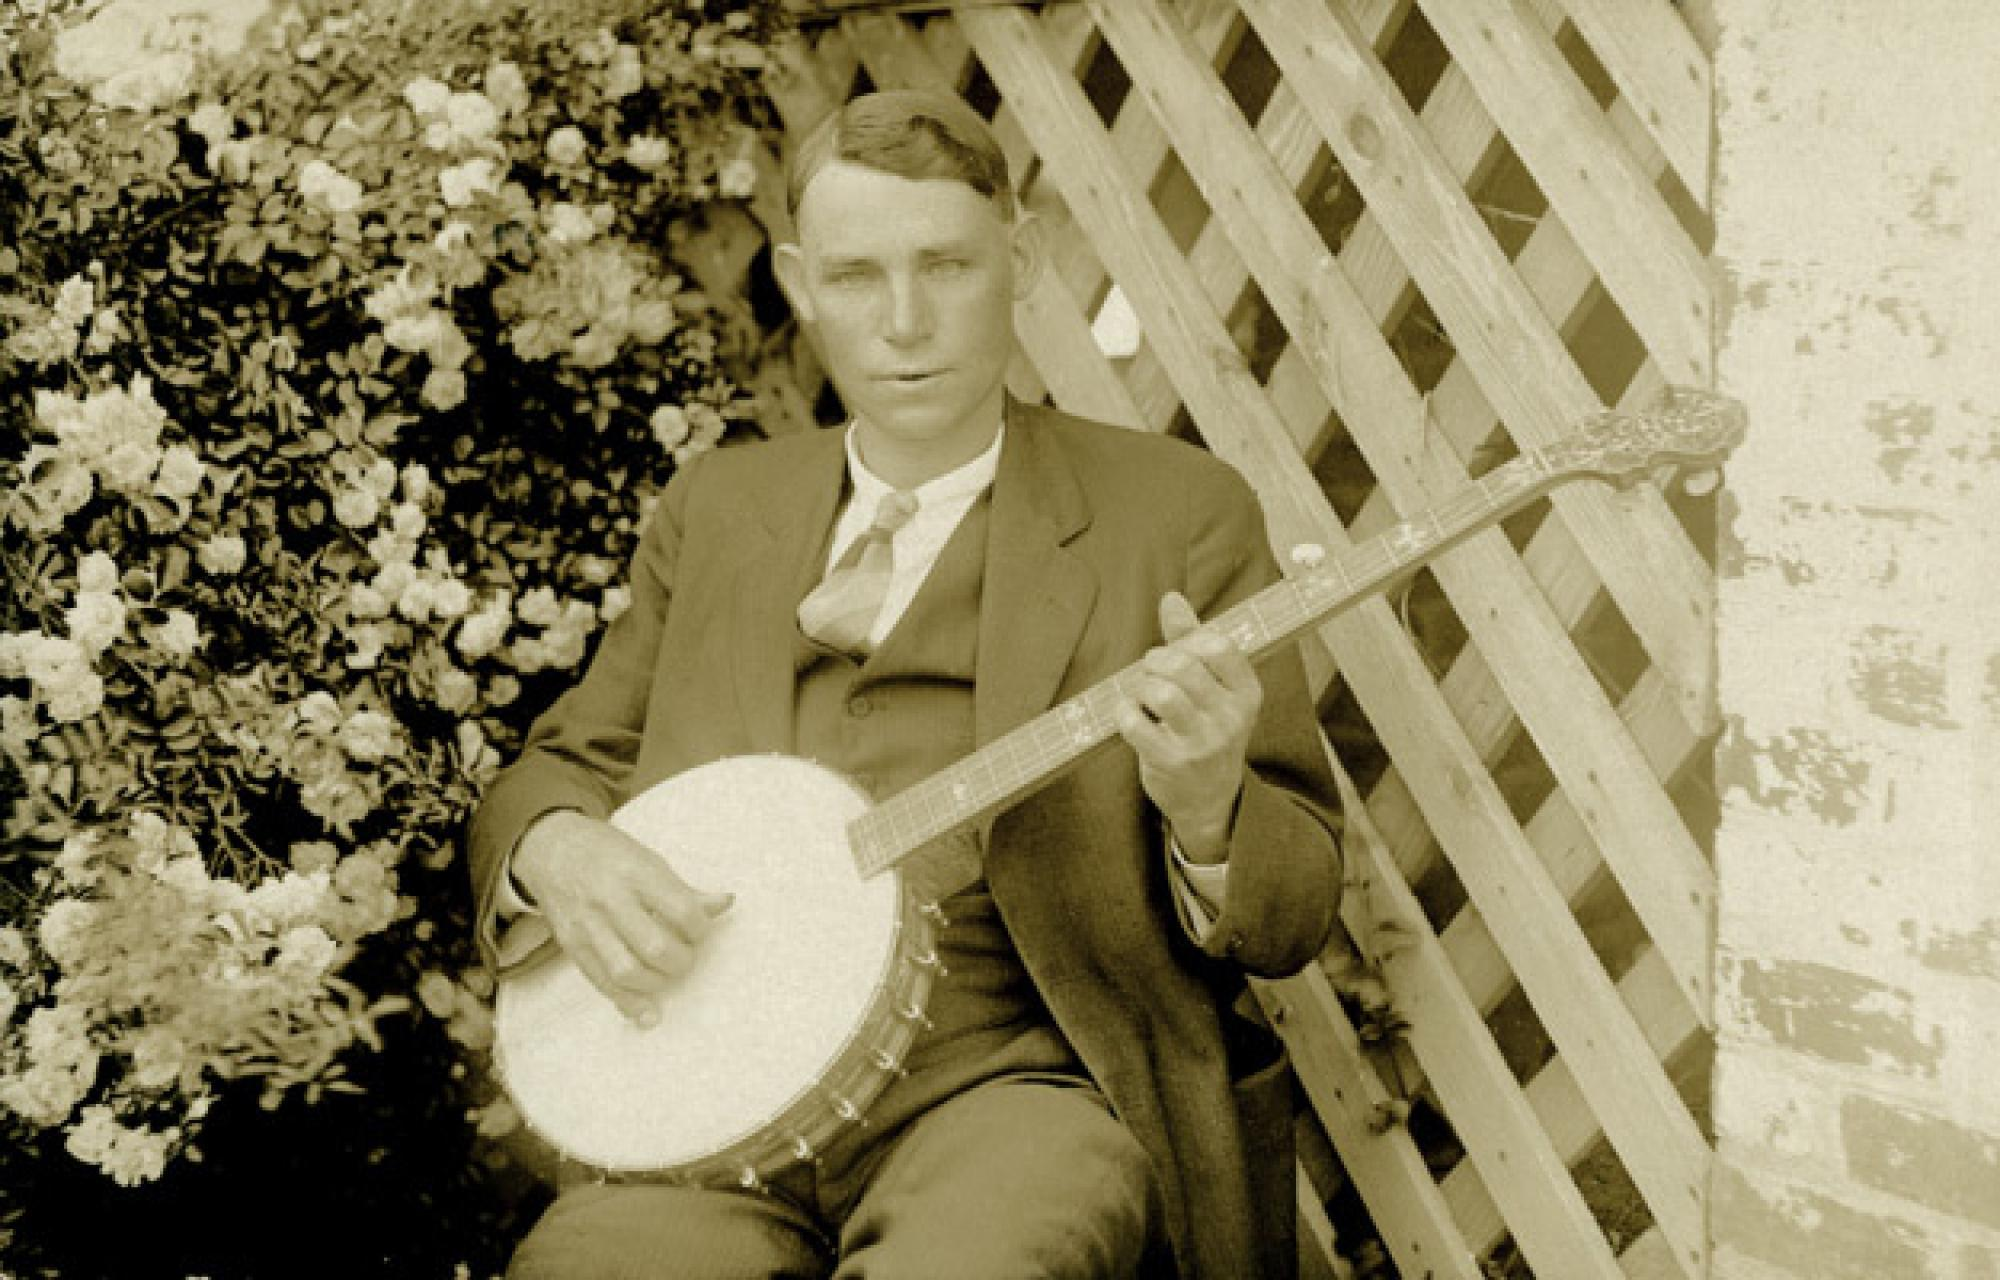 Charlie Poole posing with his banjo